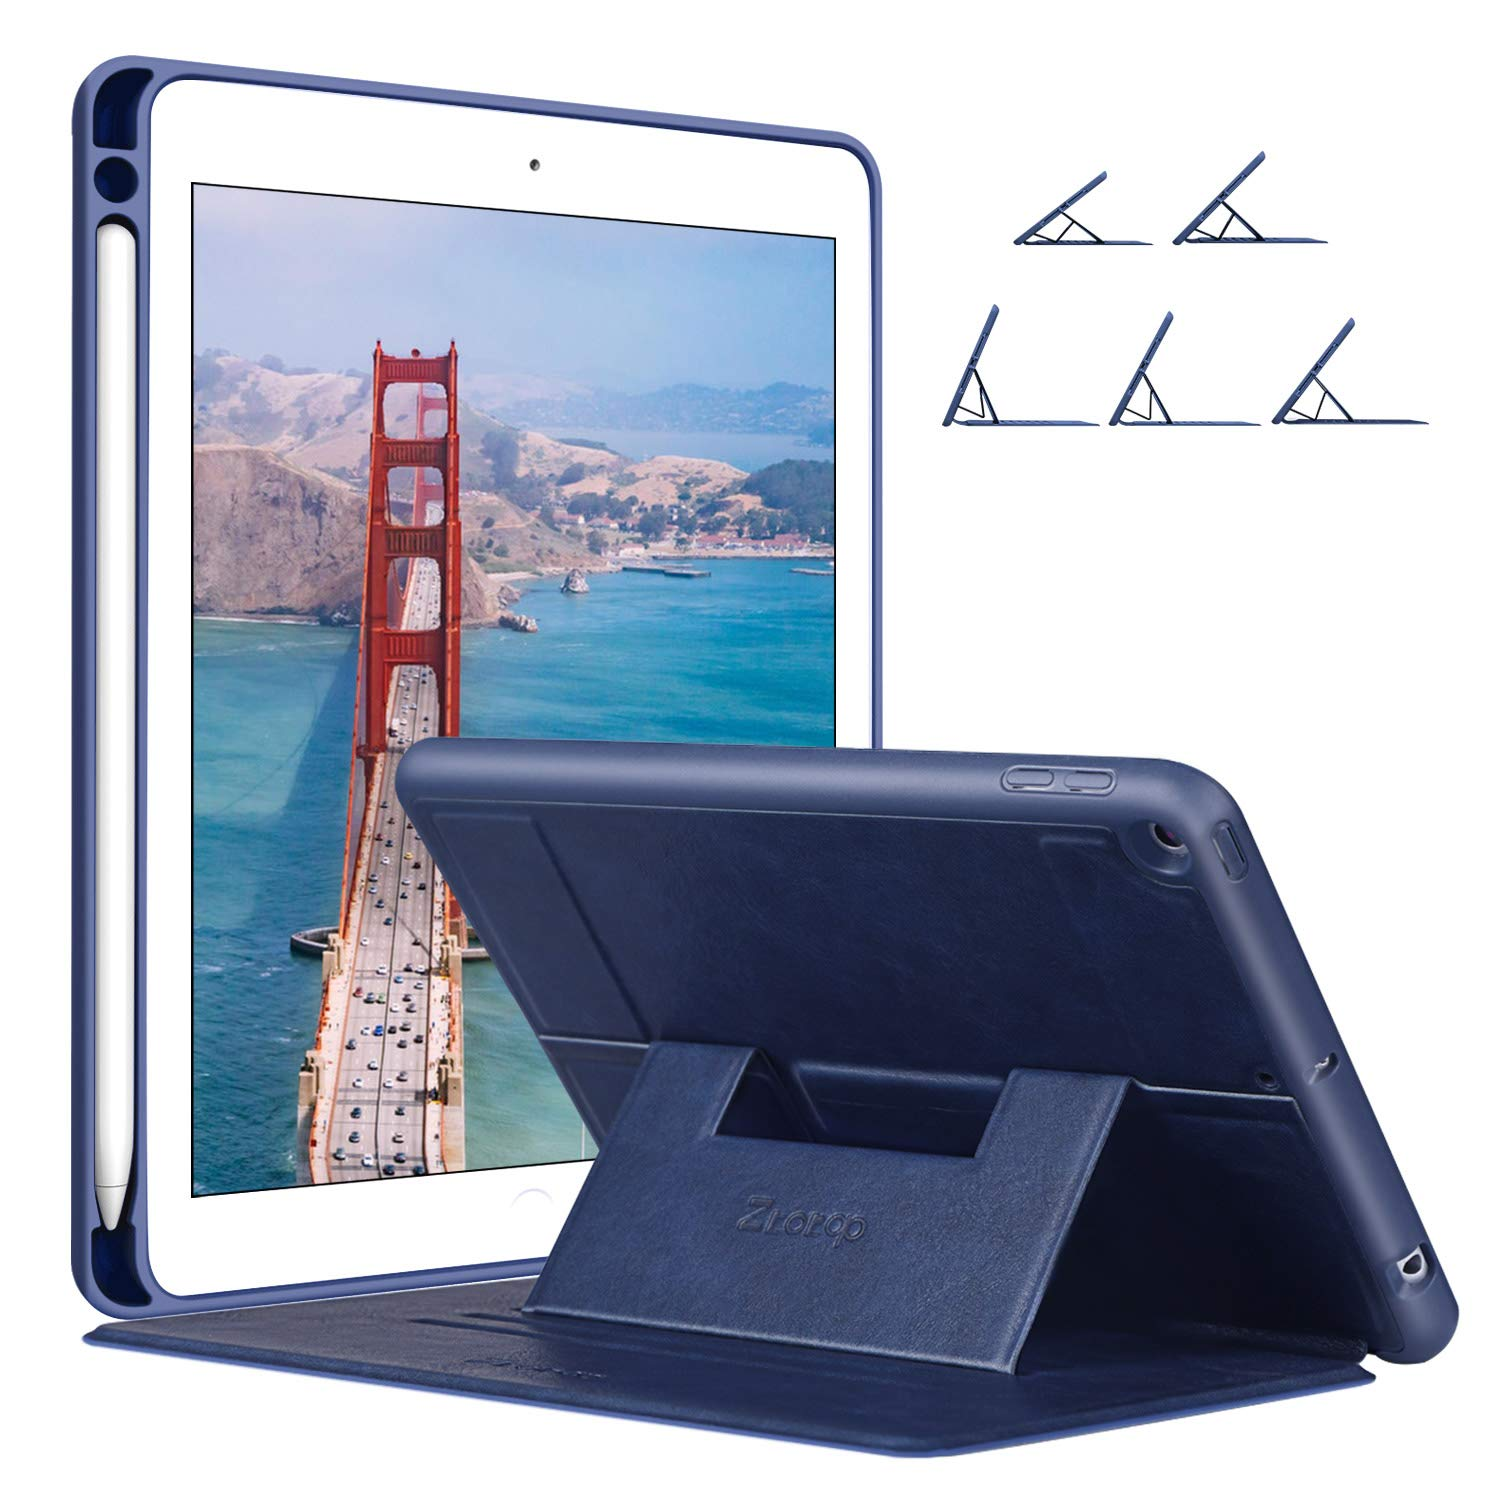 Ztotop for iPad Mini 5 Case 2019 with Pencil Holder, Secure Magnetic Stand Folio Case with Auto Wake/Sleep,Multiple Viewing Angles,Soft Silicone Back Cover for iPad Mini 5th Gen 7.9-inch 2019, Blue